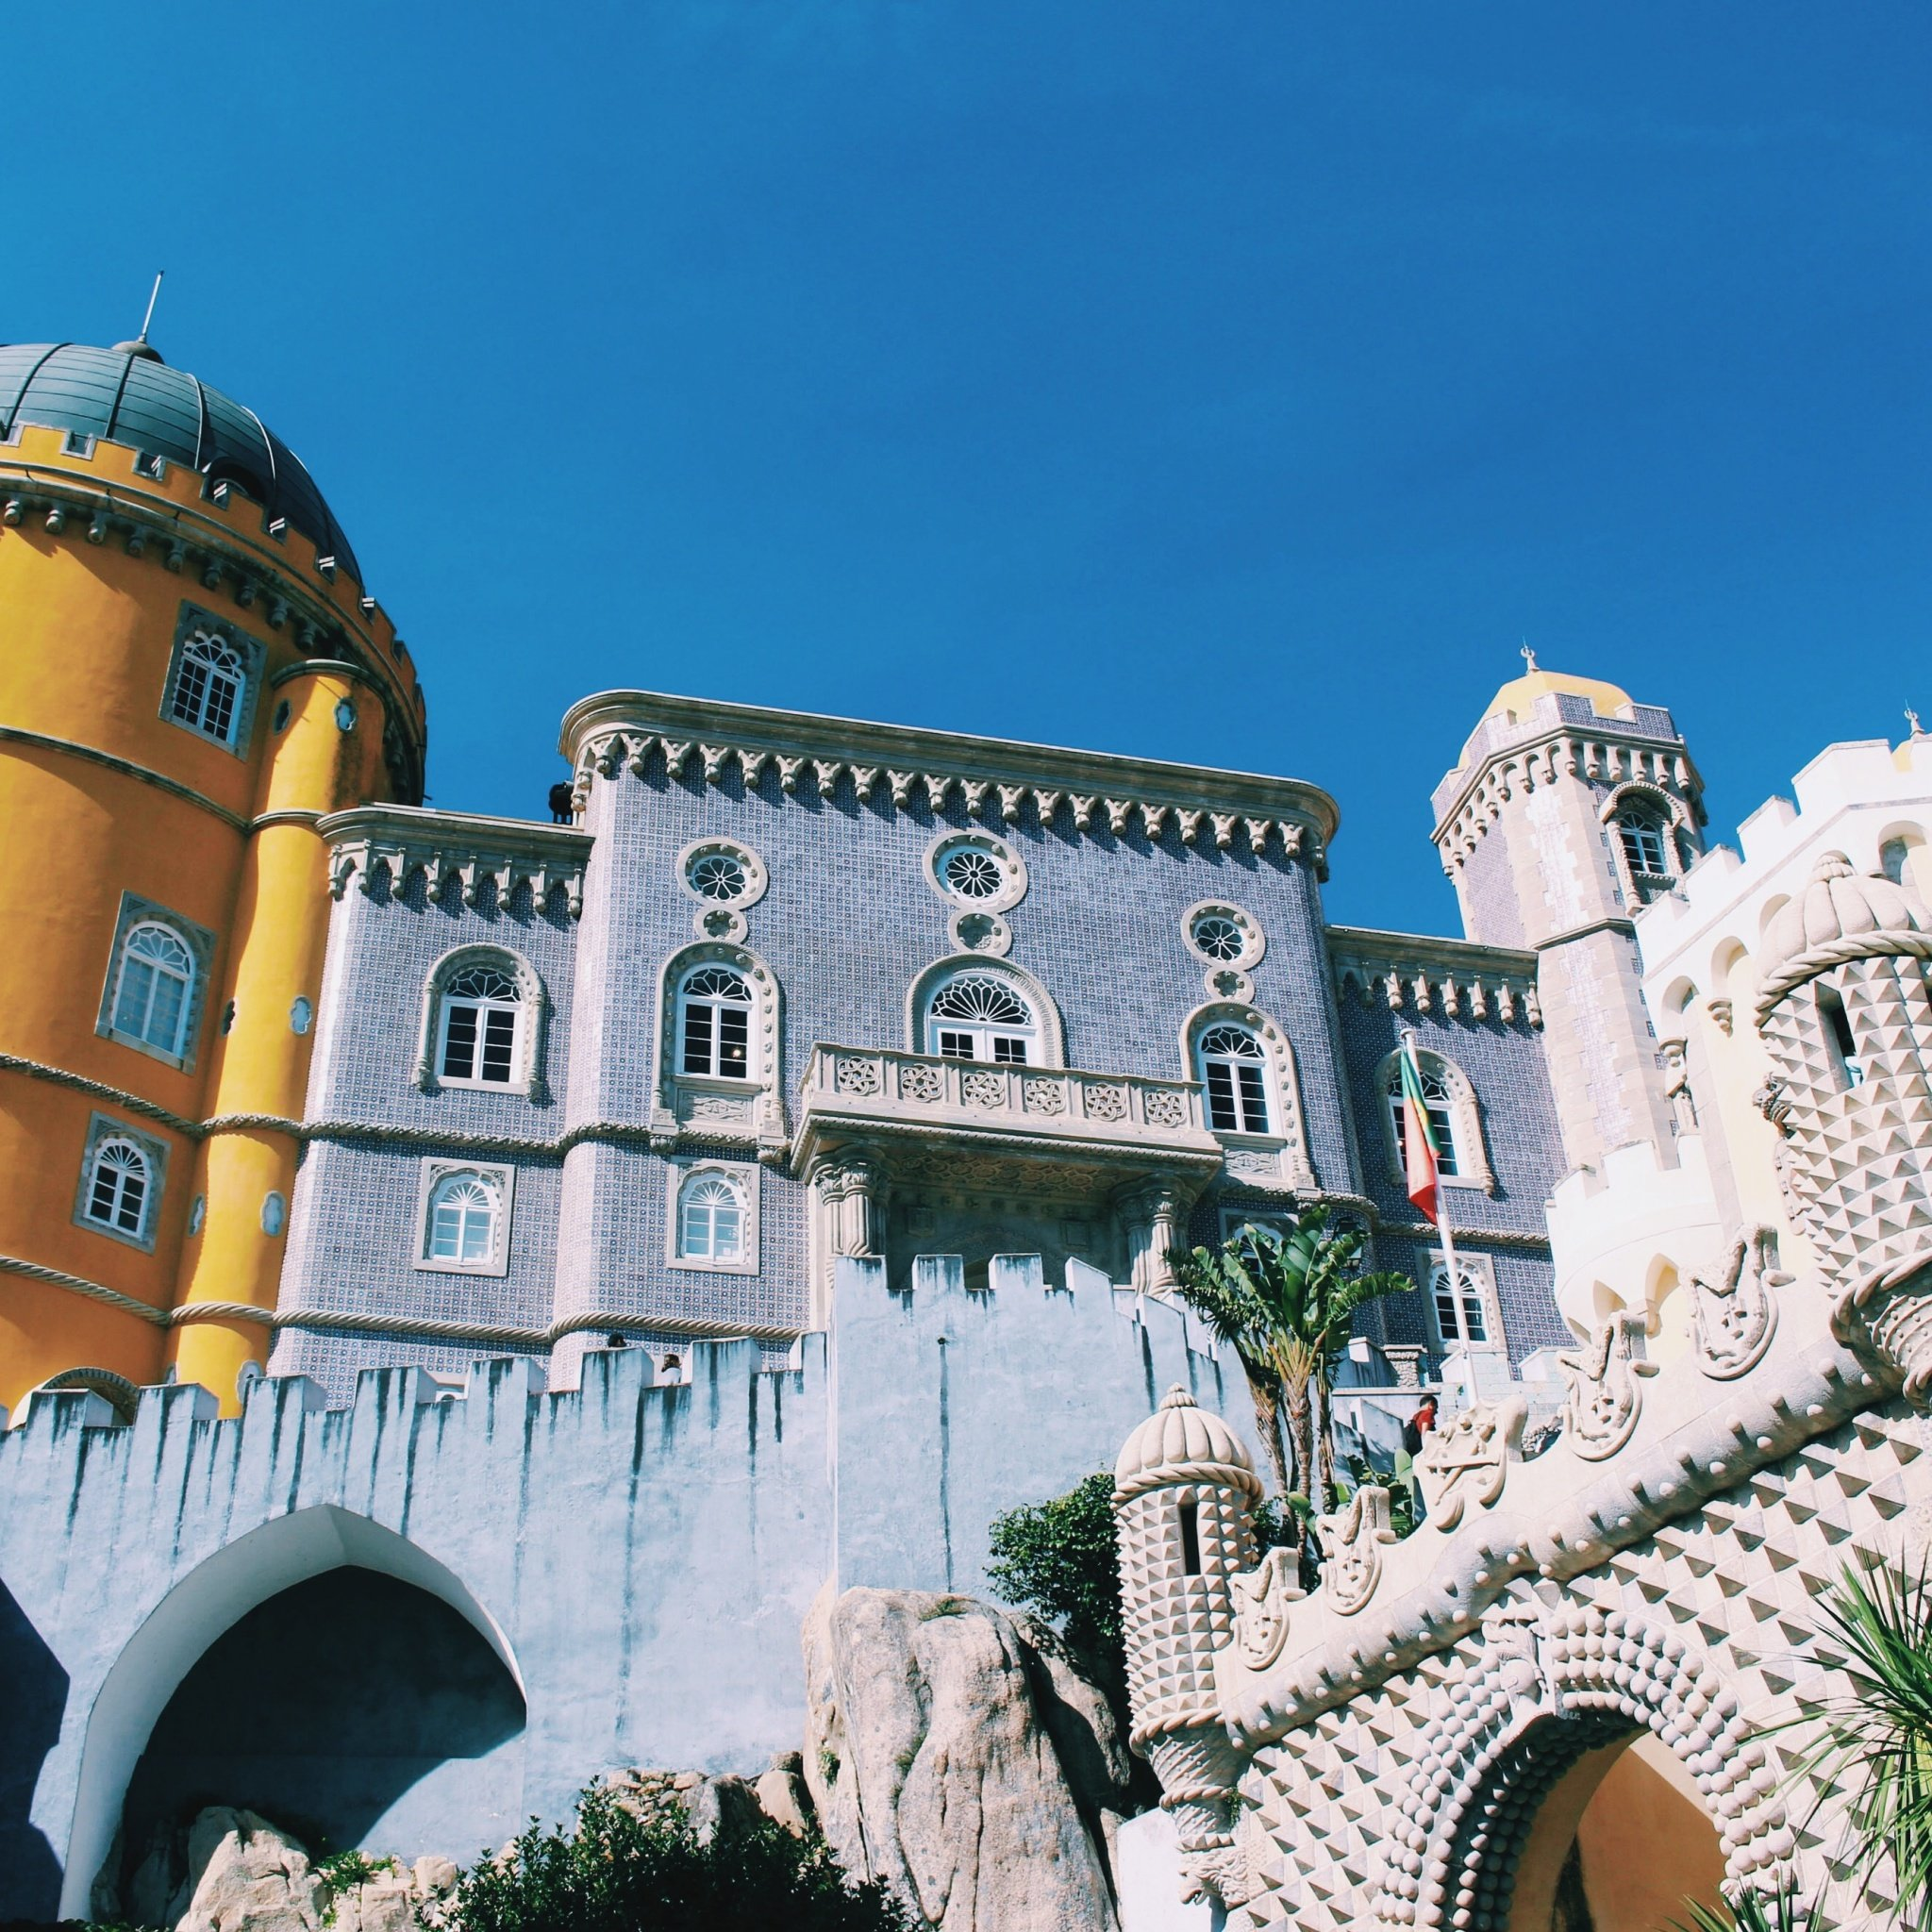 Palace of Pena Castle in Sintra, Portugal